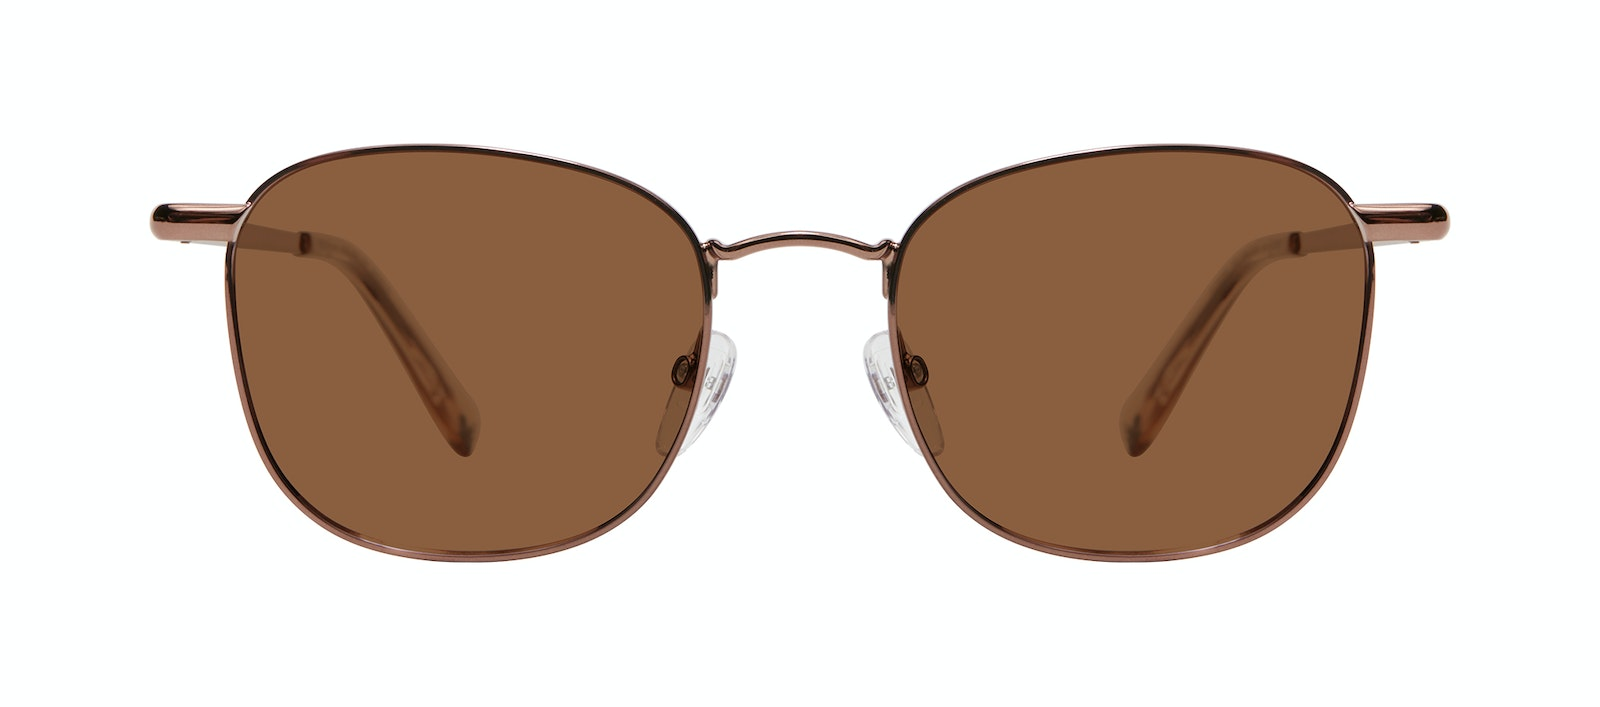 Affordable Fashion Glasses Square Sunglasses Men Apex M Copper Front